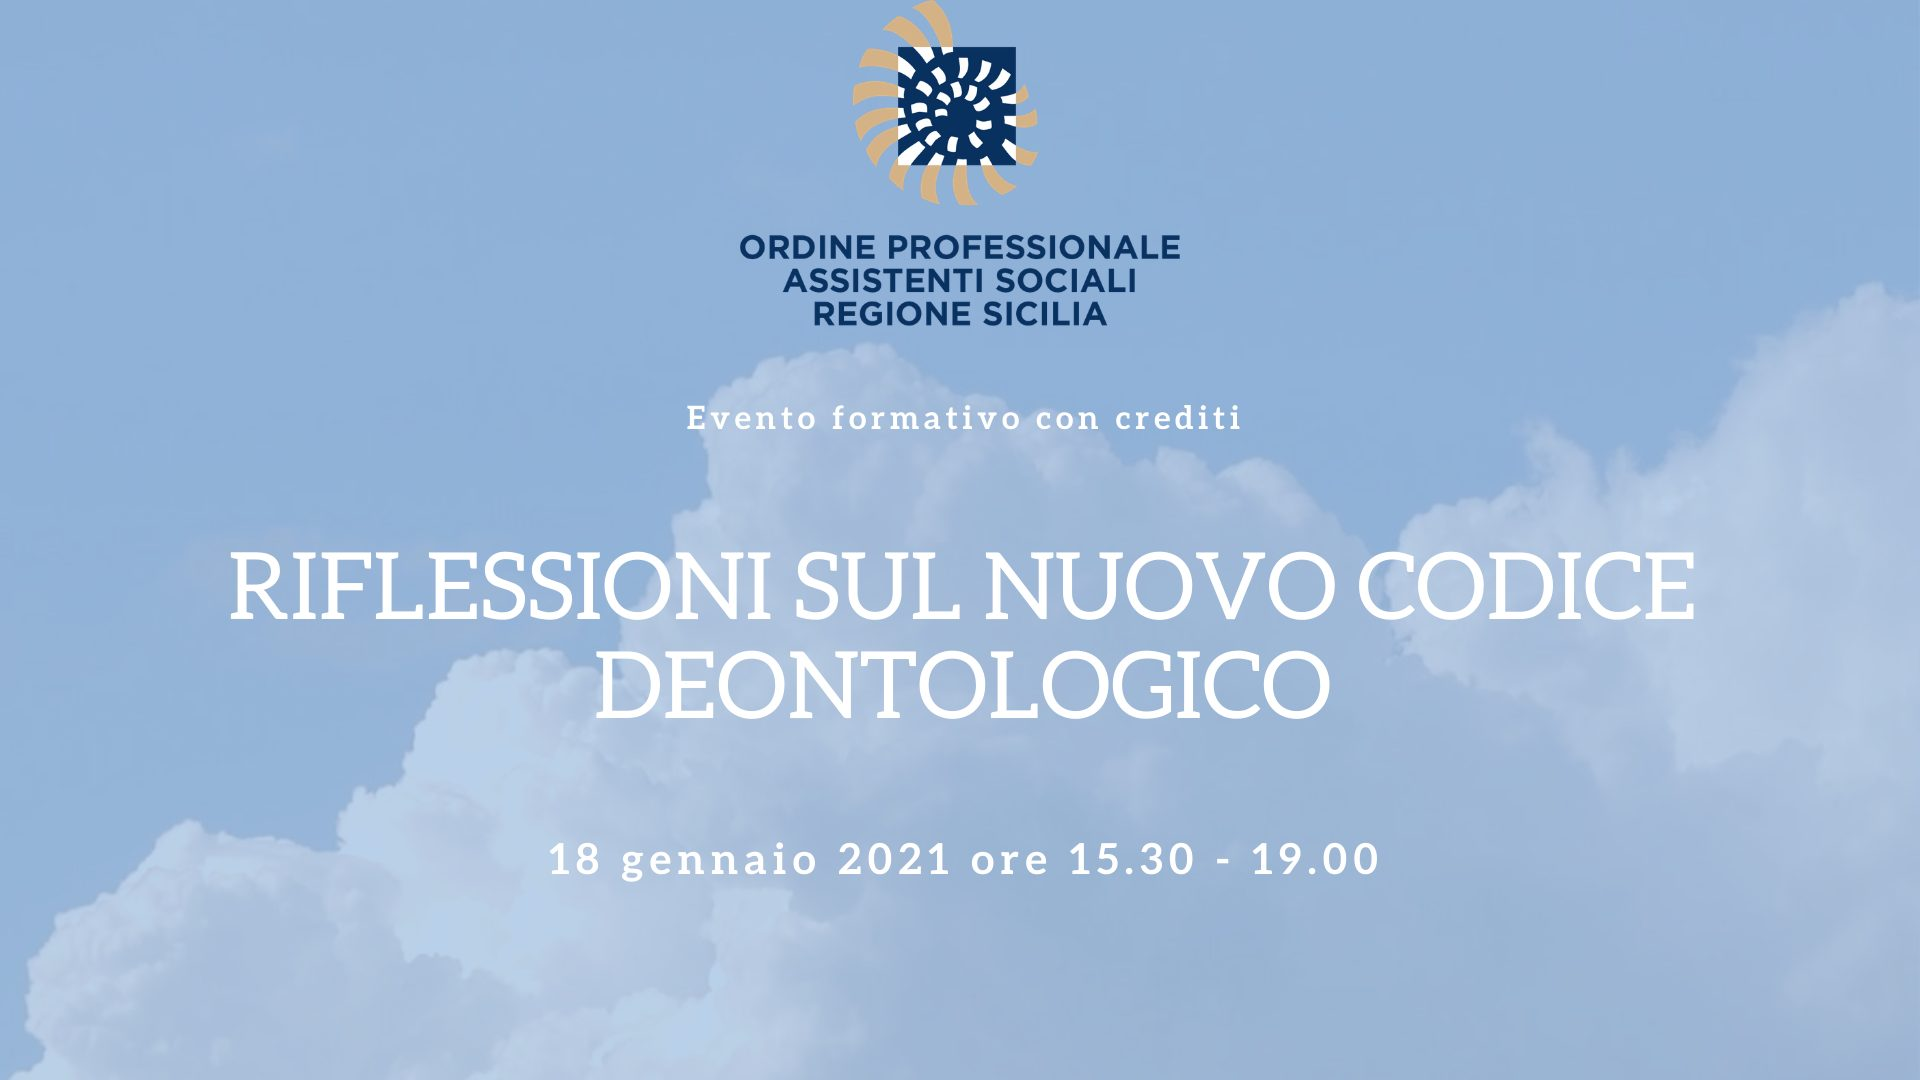 Distance training for the Professional Order of Social Workers of the Sicily Region